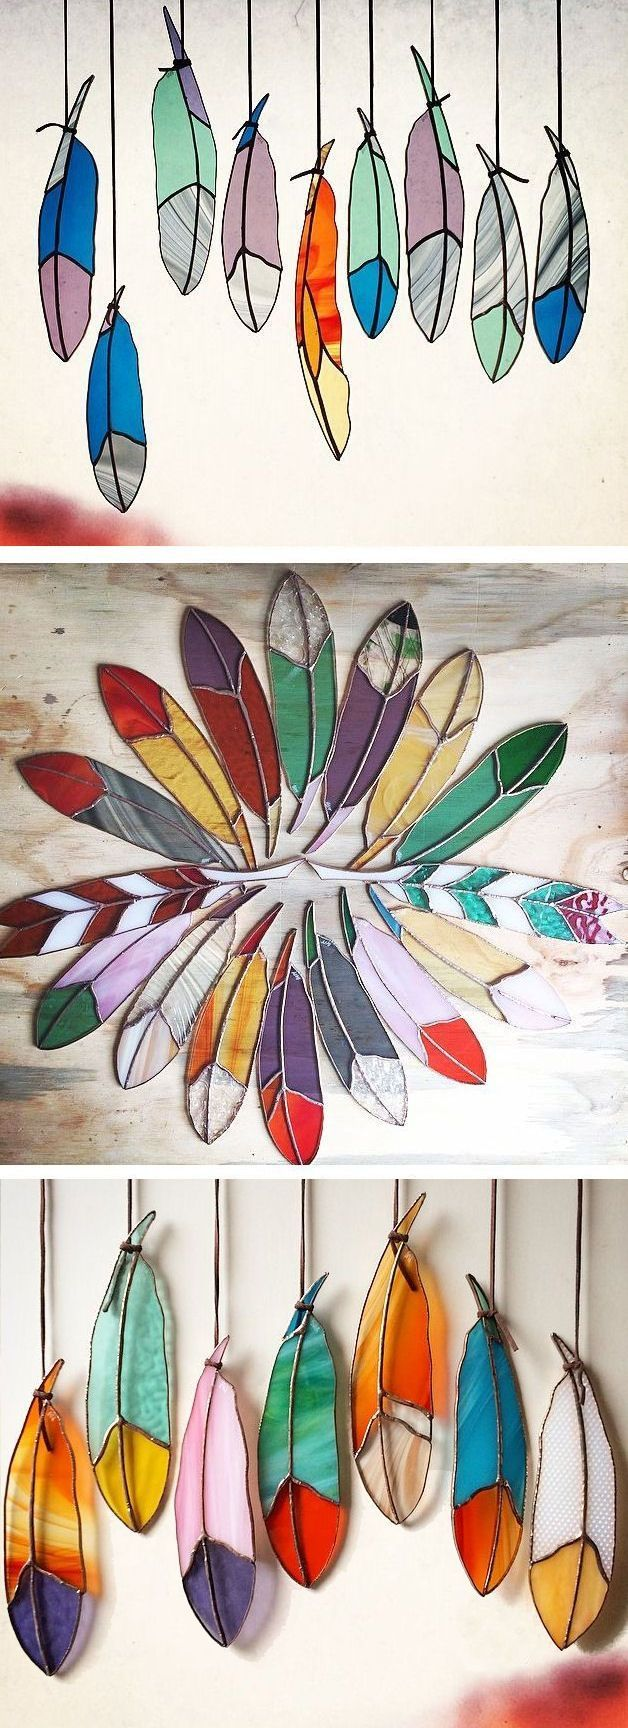 Stained Glass Feathers ❤︎